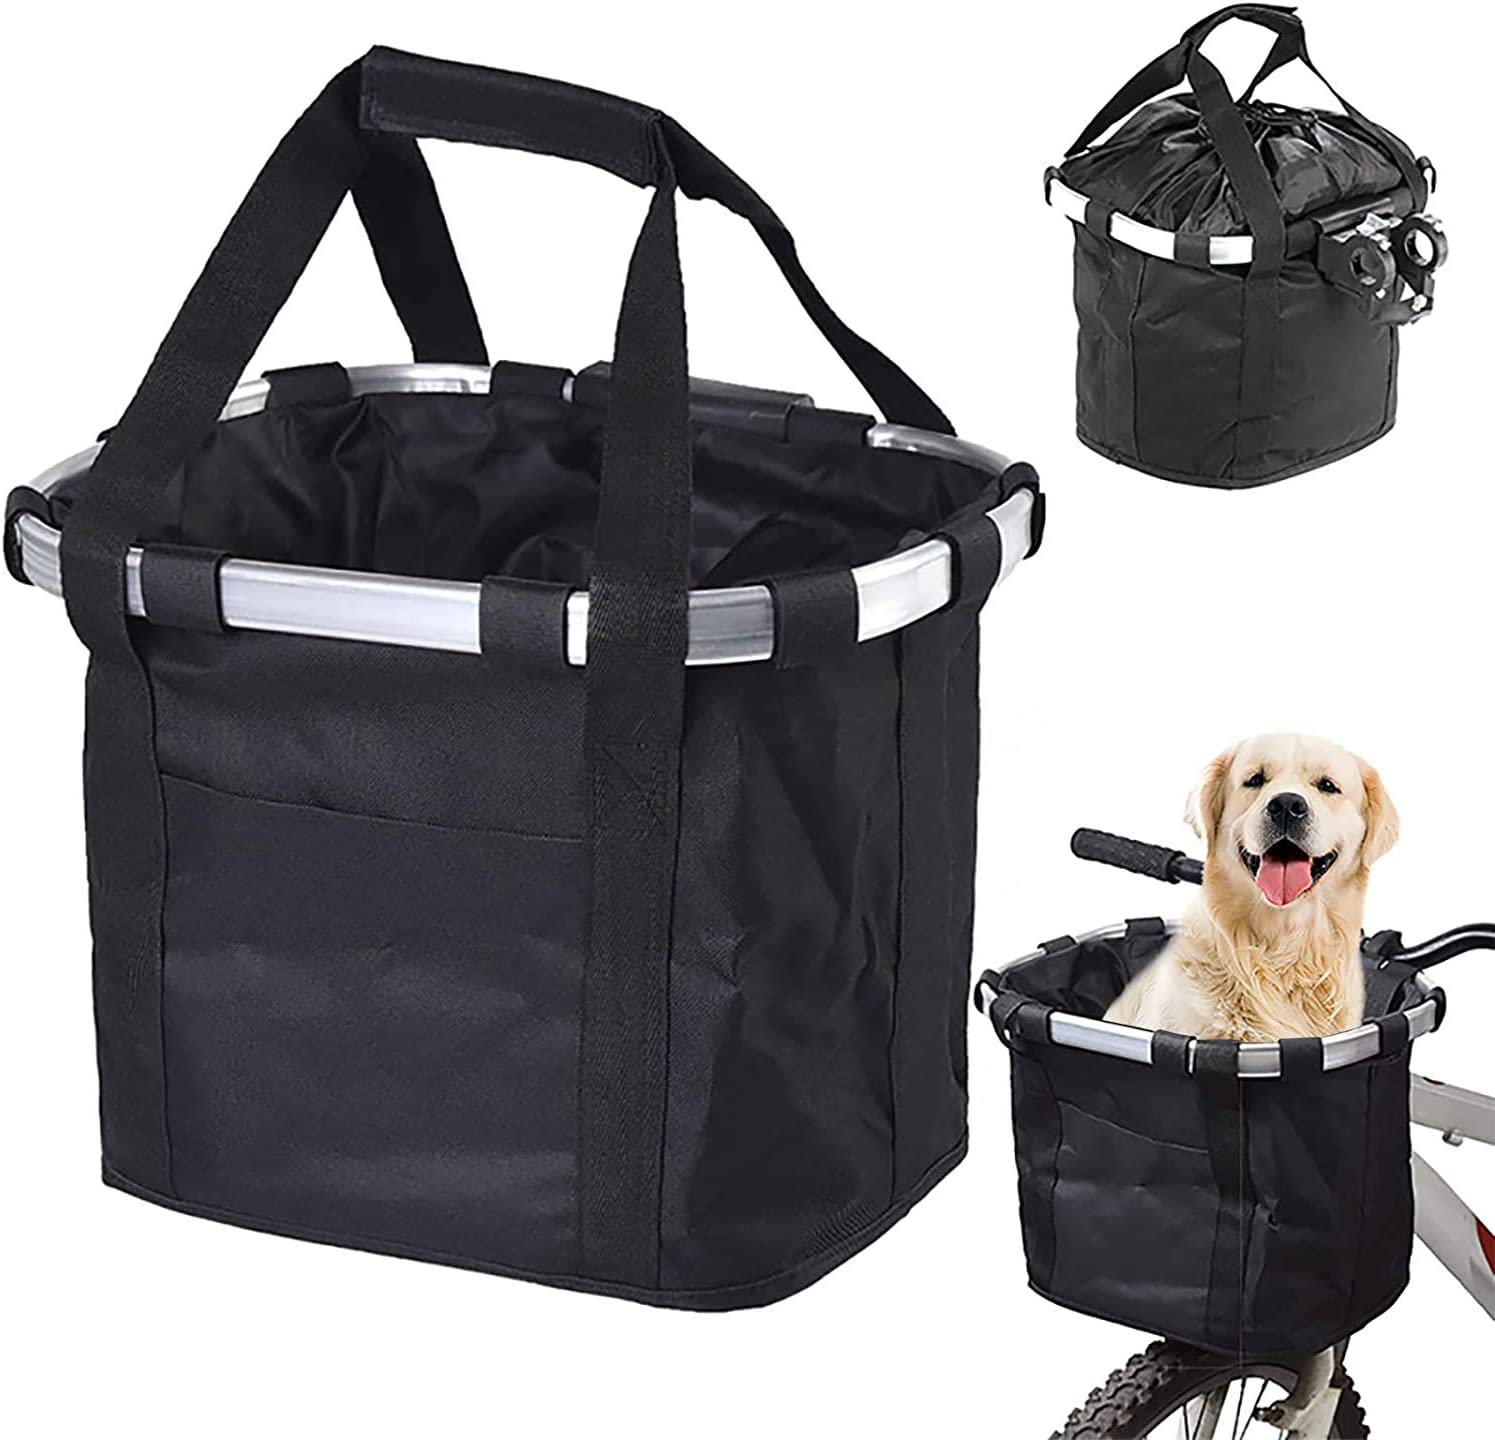 Bicycle Front Carrying Basket Hanging Removable Dog Transport Carrier Outdoor A